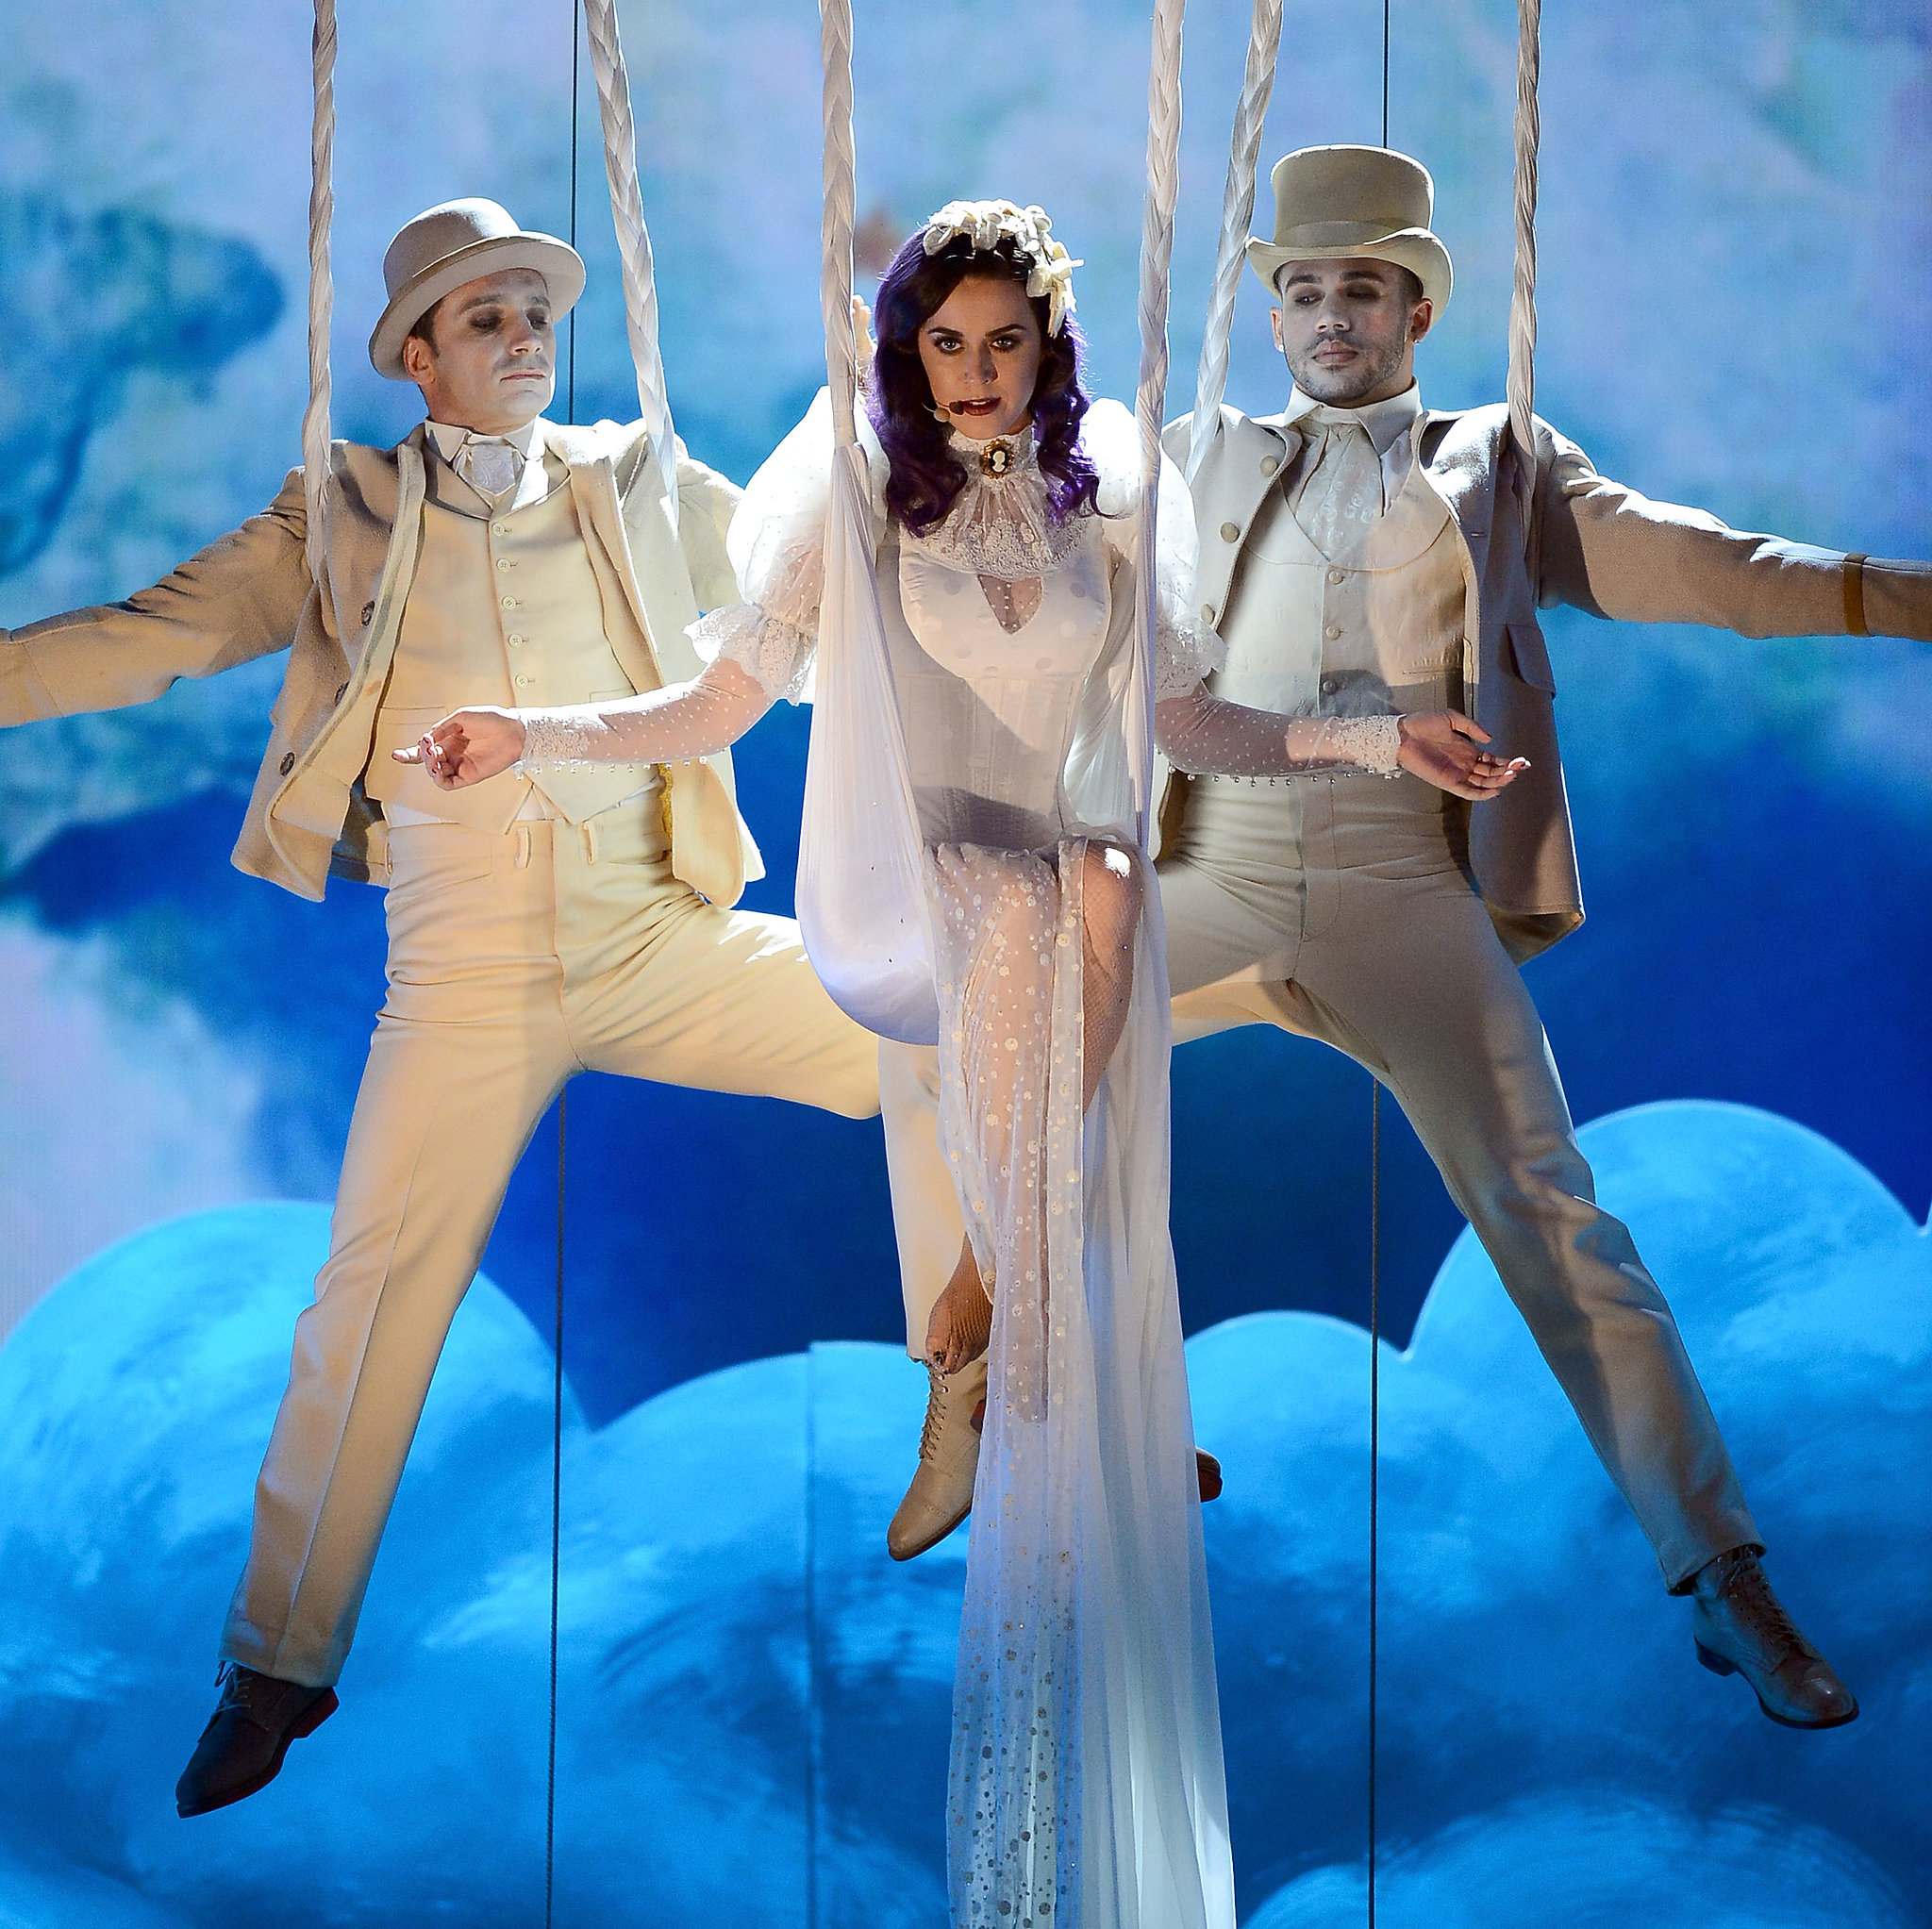 Katy Perry performed at the May 2012 Billboard Music Awards.